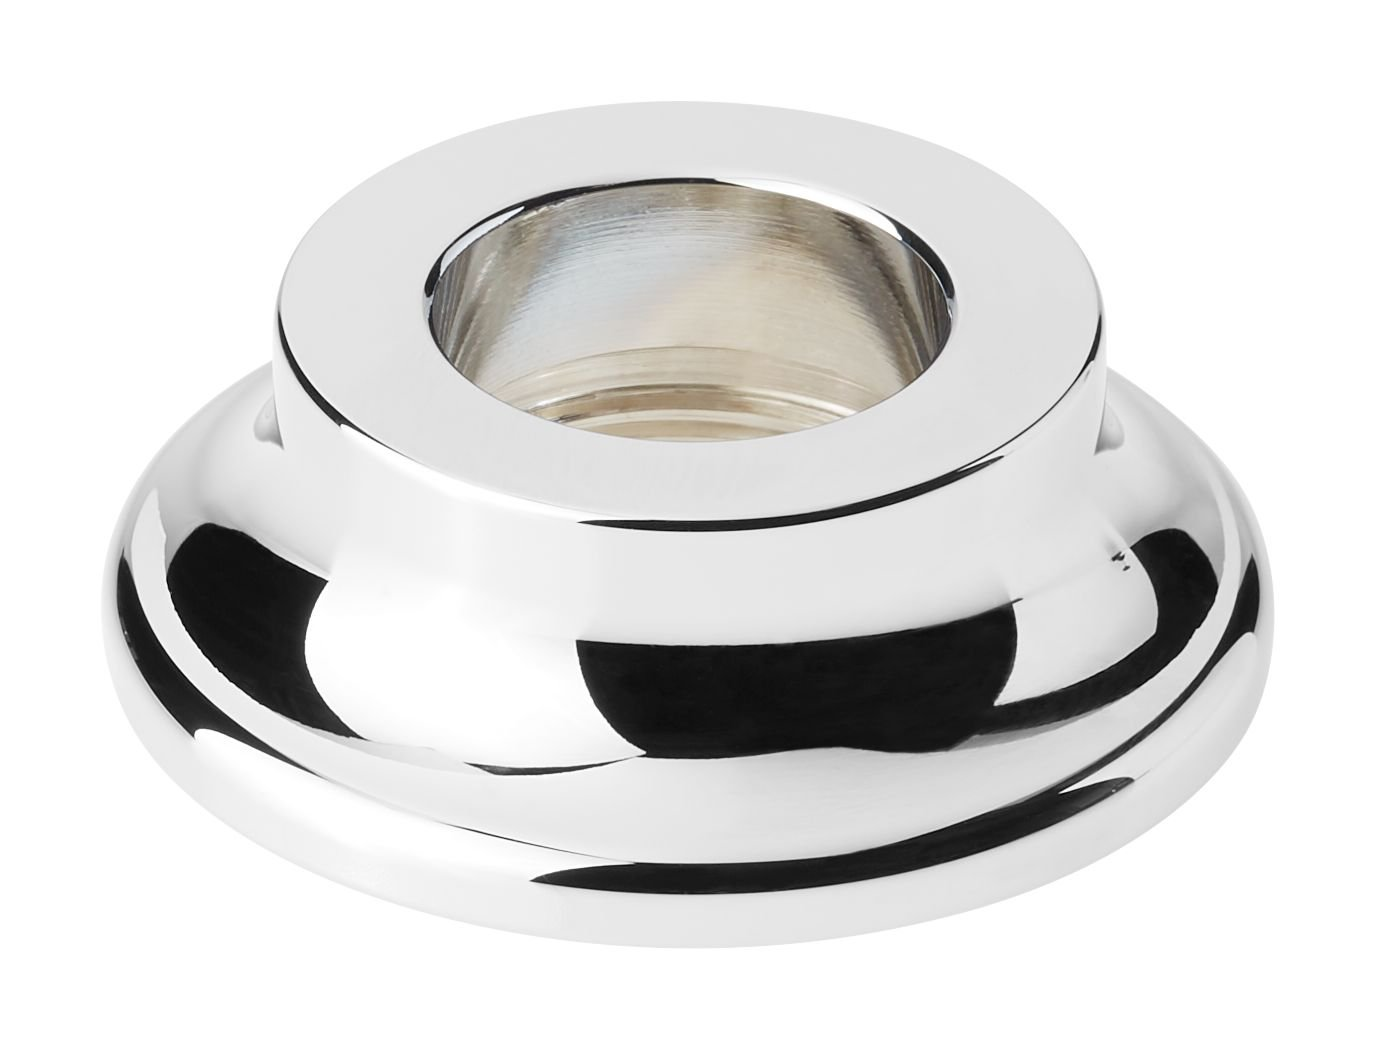 Kohler K-1184074-CP Escutcheon in Polished Chrome